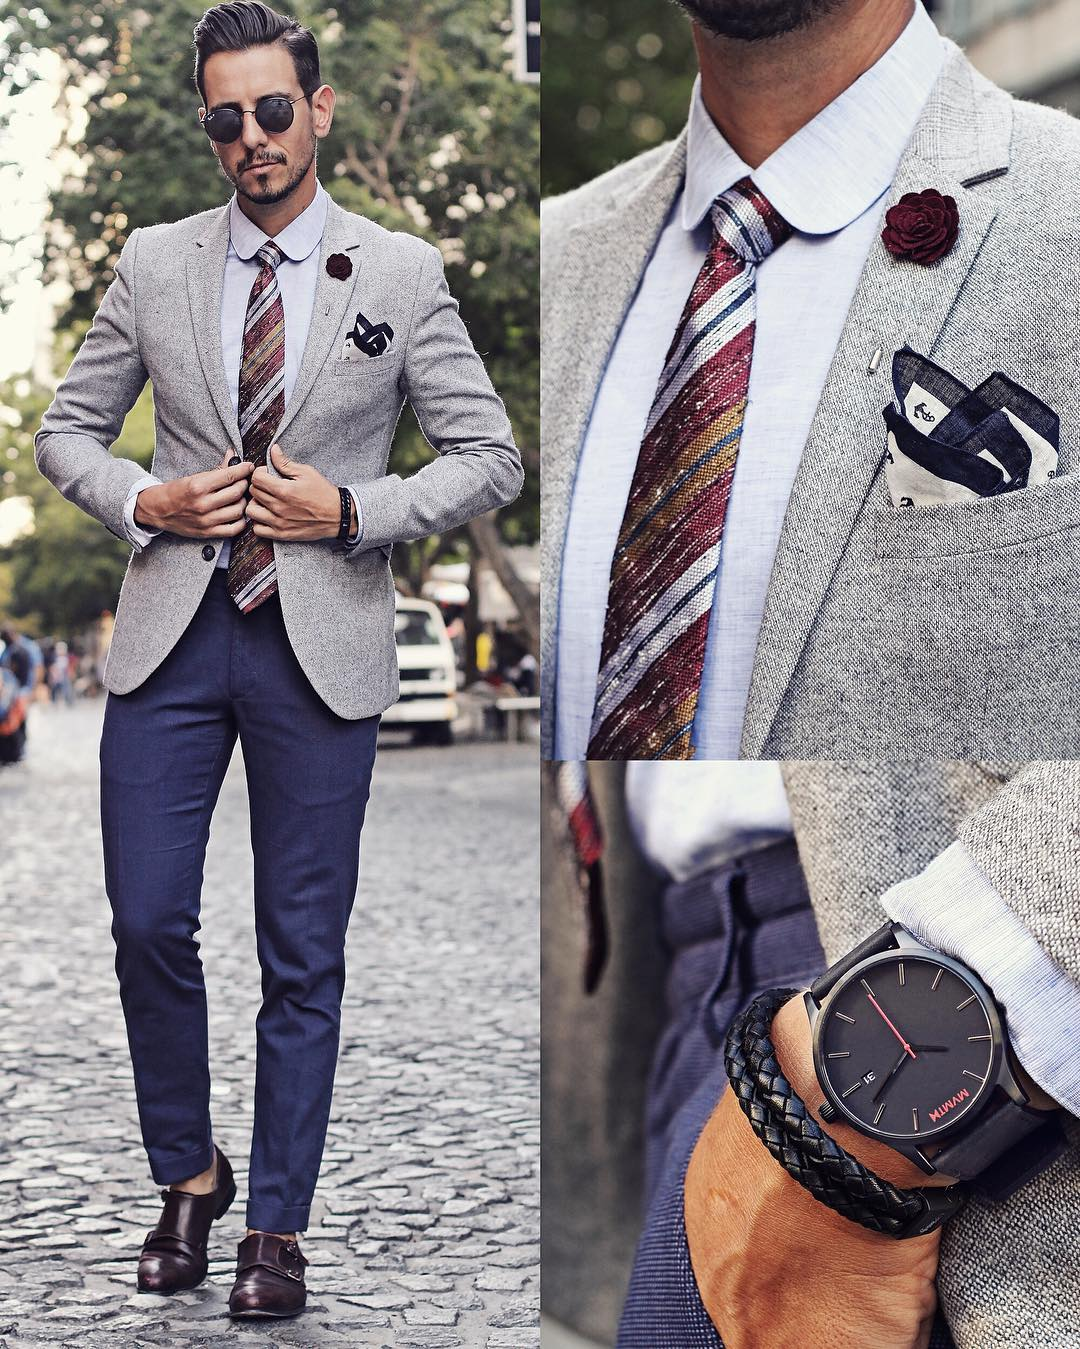 Suit Watch And Pocket Square Combinations For Men